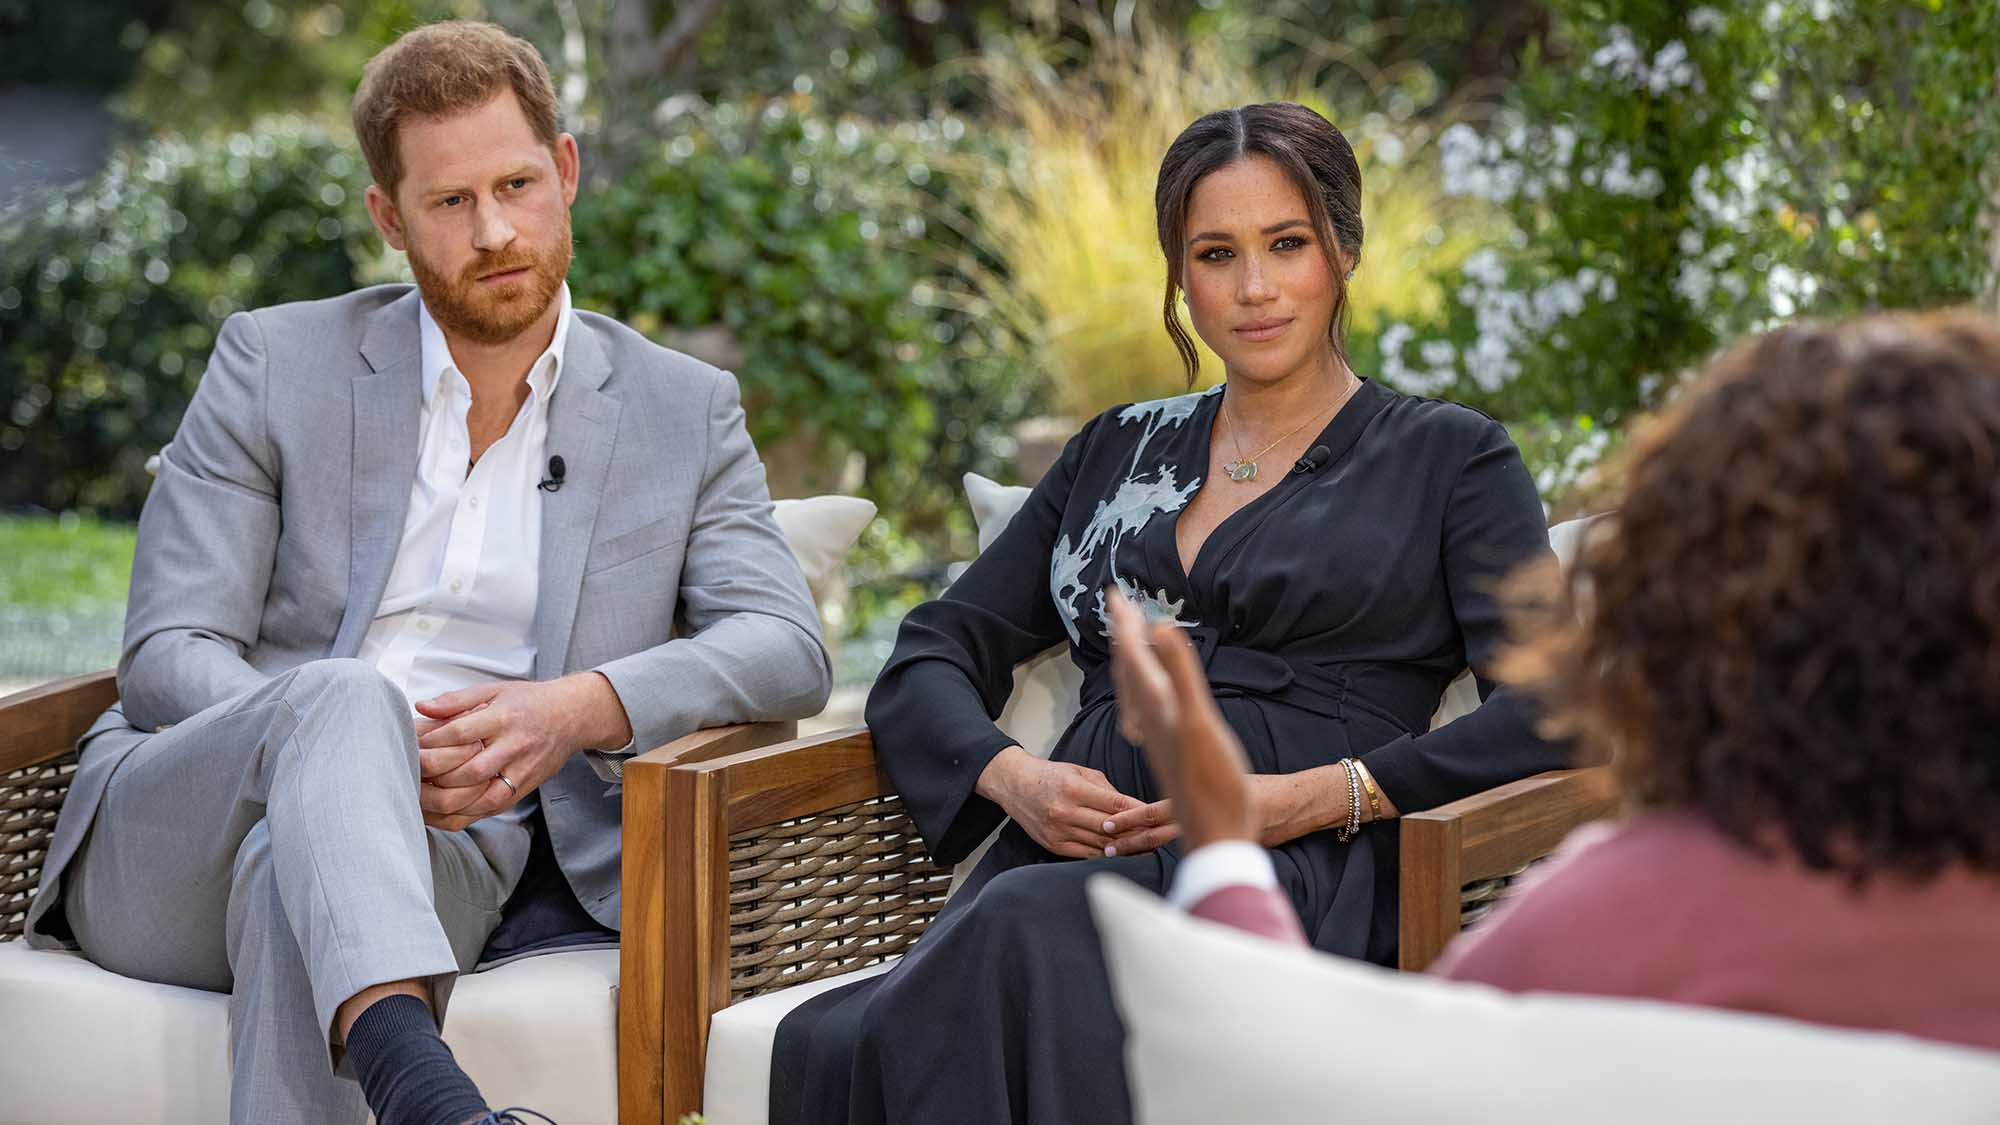 Why Oprah's interview with Meghan and Harry drew a staggering 17 million viewers